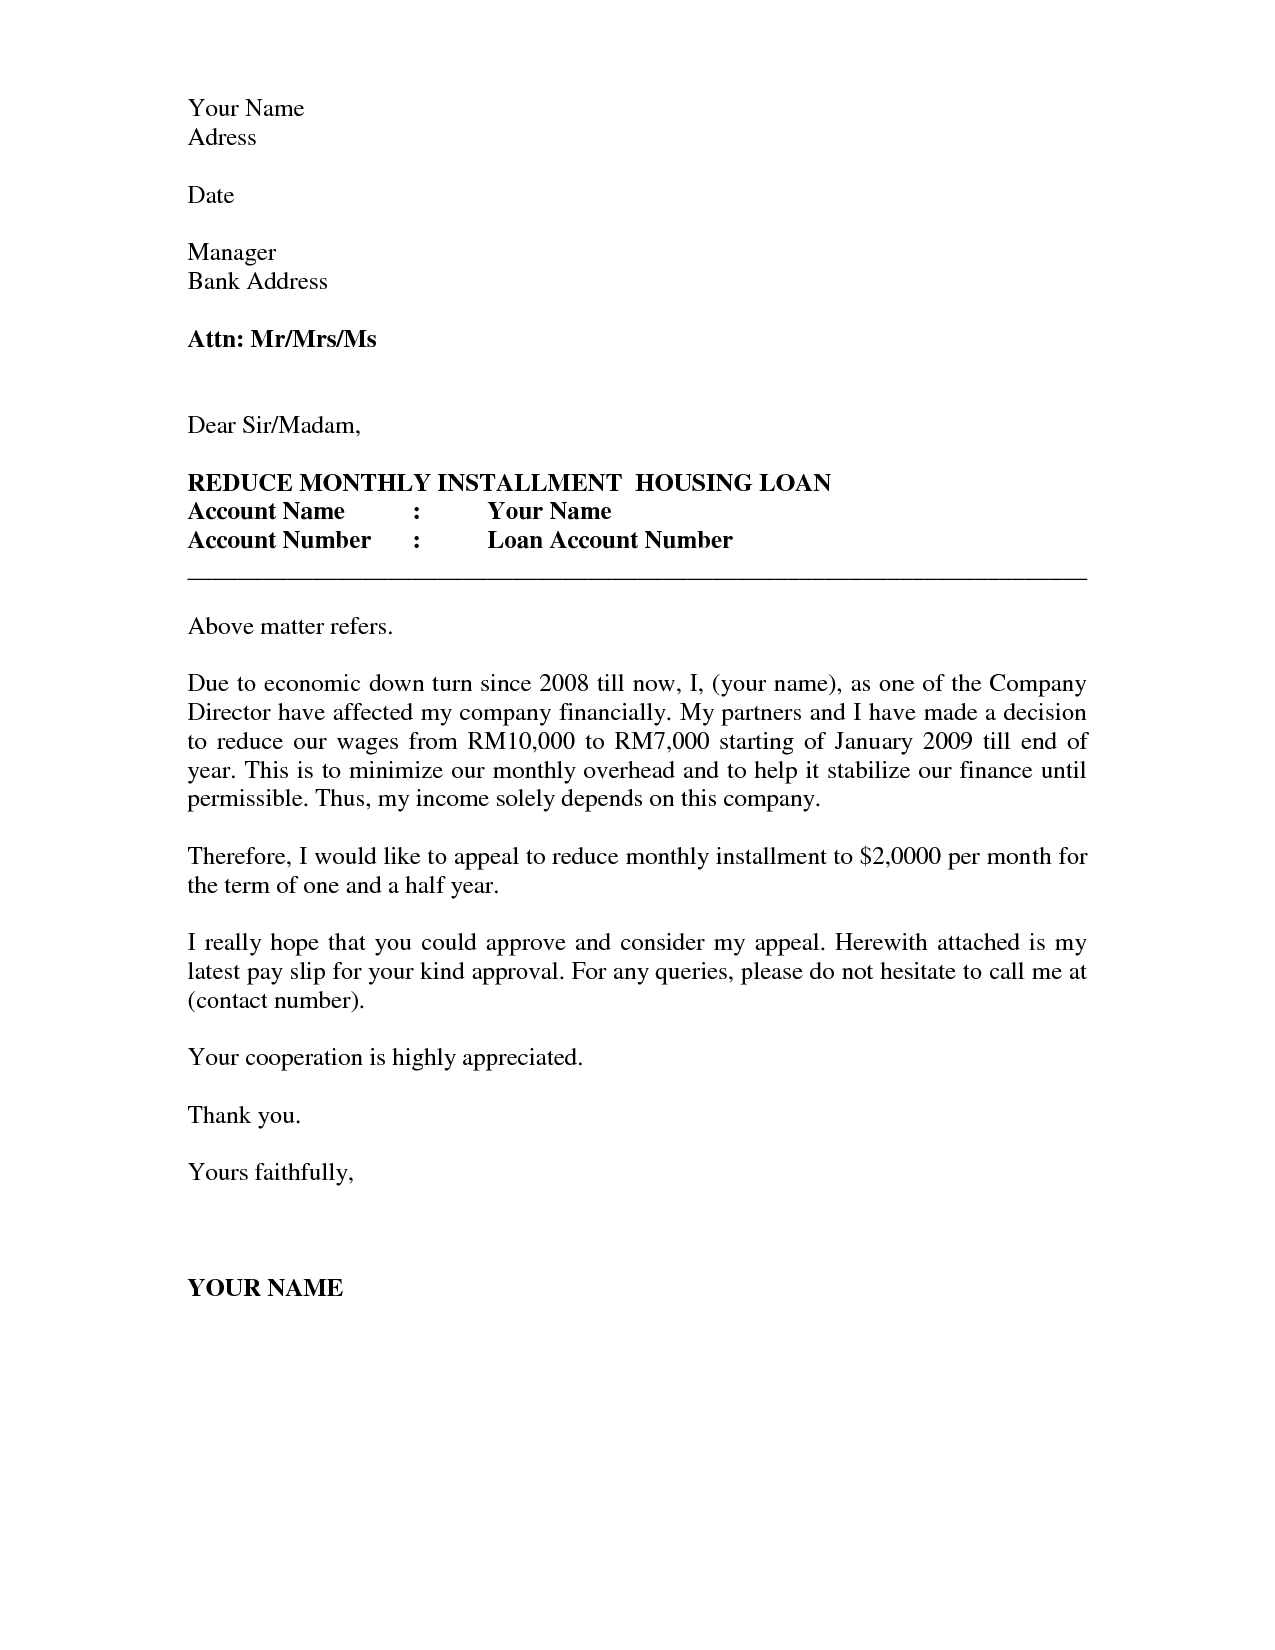 Lovely Business Appeal Letter   A Letter Of Appeal Should Be Written In A  Professional Business Letter To Appeal Letter Template